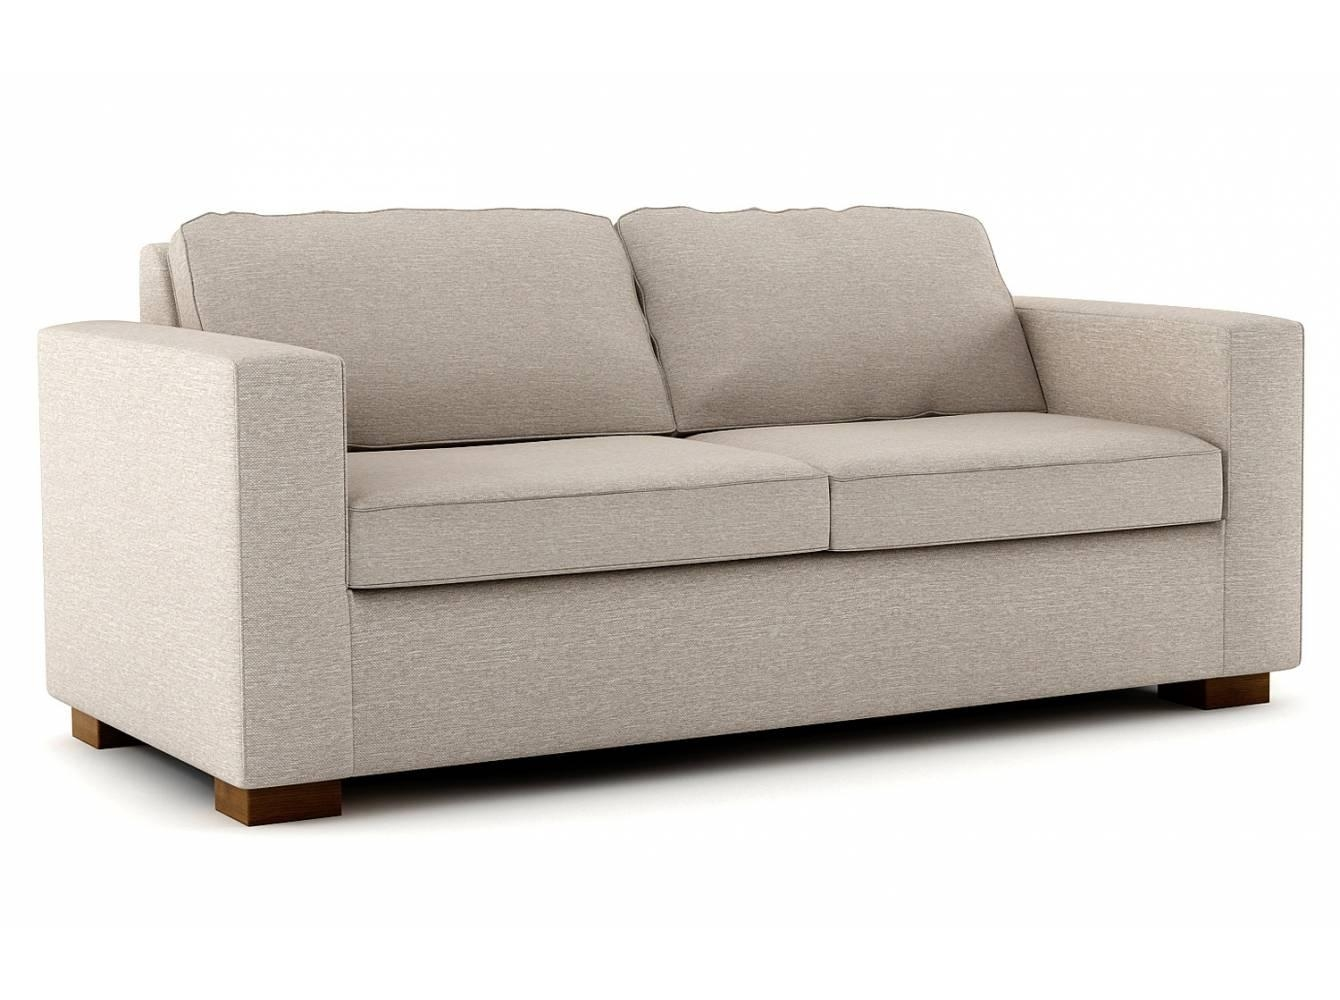 Rio Sofa Bed – Stem Pertaining To Queen Sofa Beds (View 6 of 20)